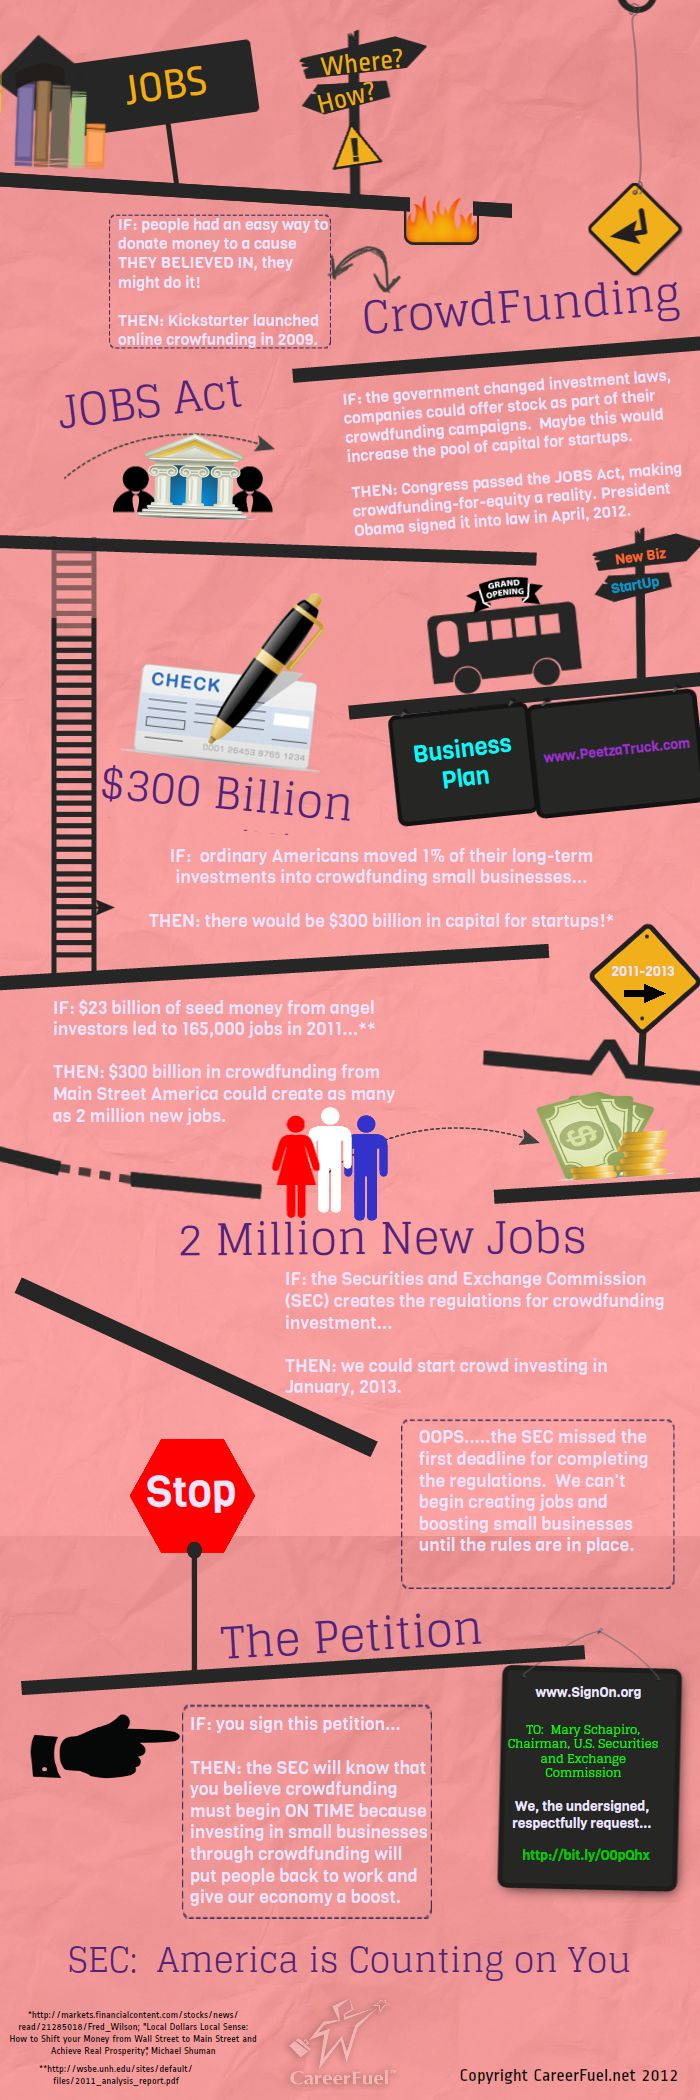 Crowdfunding jobs act #infographic